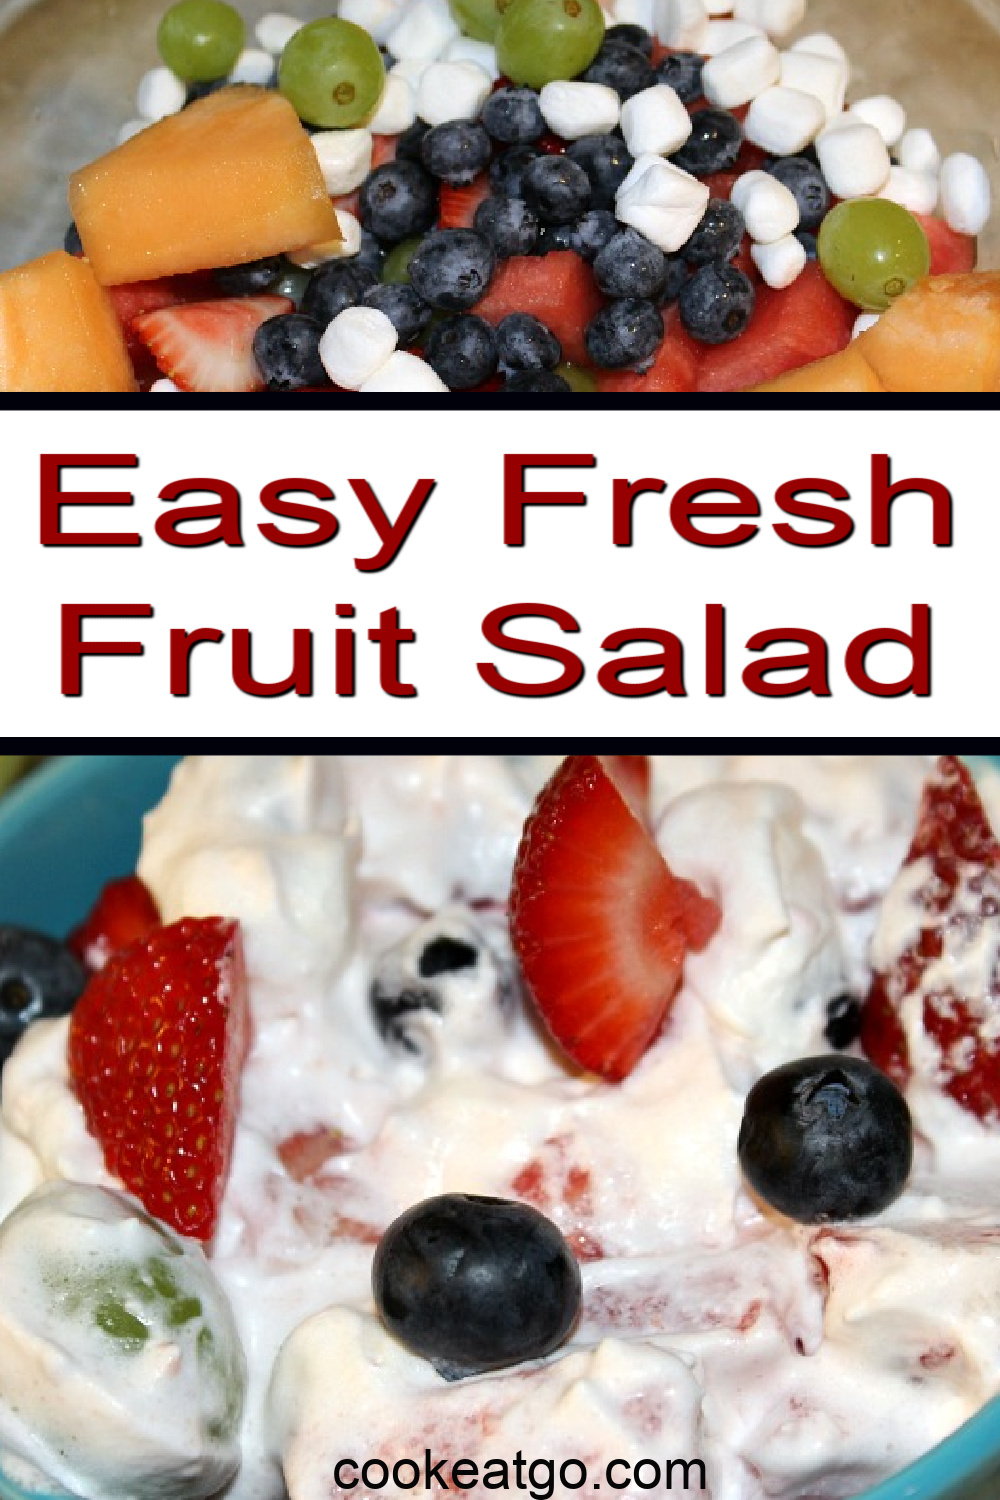 This fresh fruit salad is sure to be a hit with everyone! Use the summer's fresh fruit and whipped topping to make a dish perfect for any meal and gathering